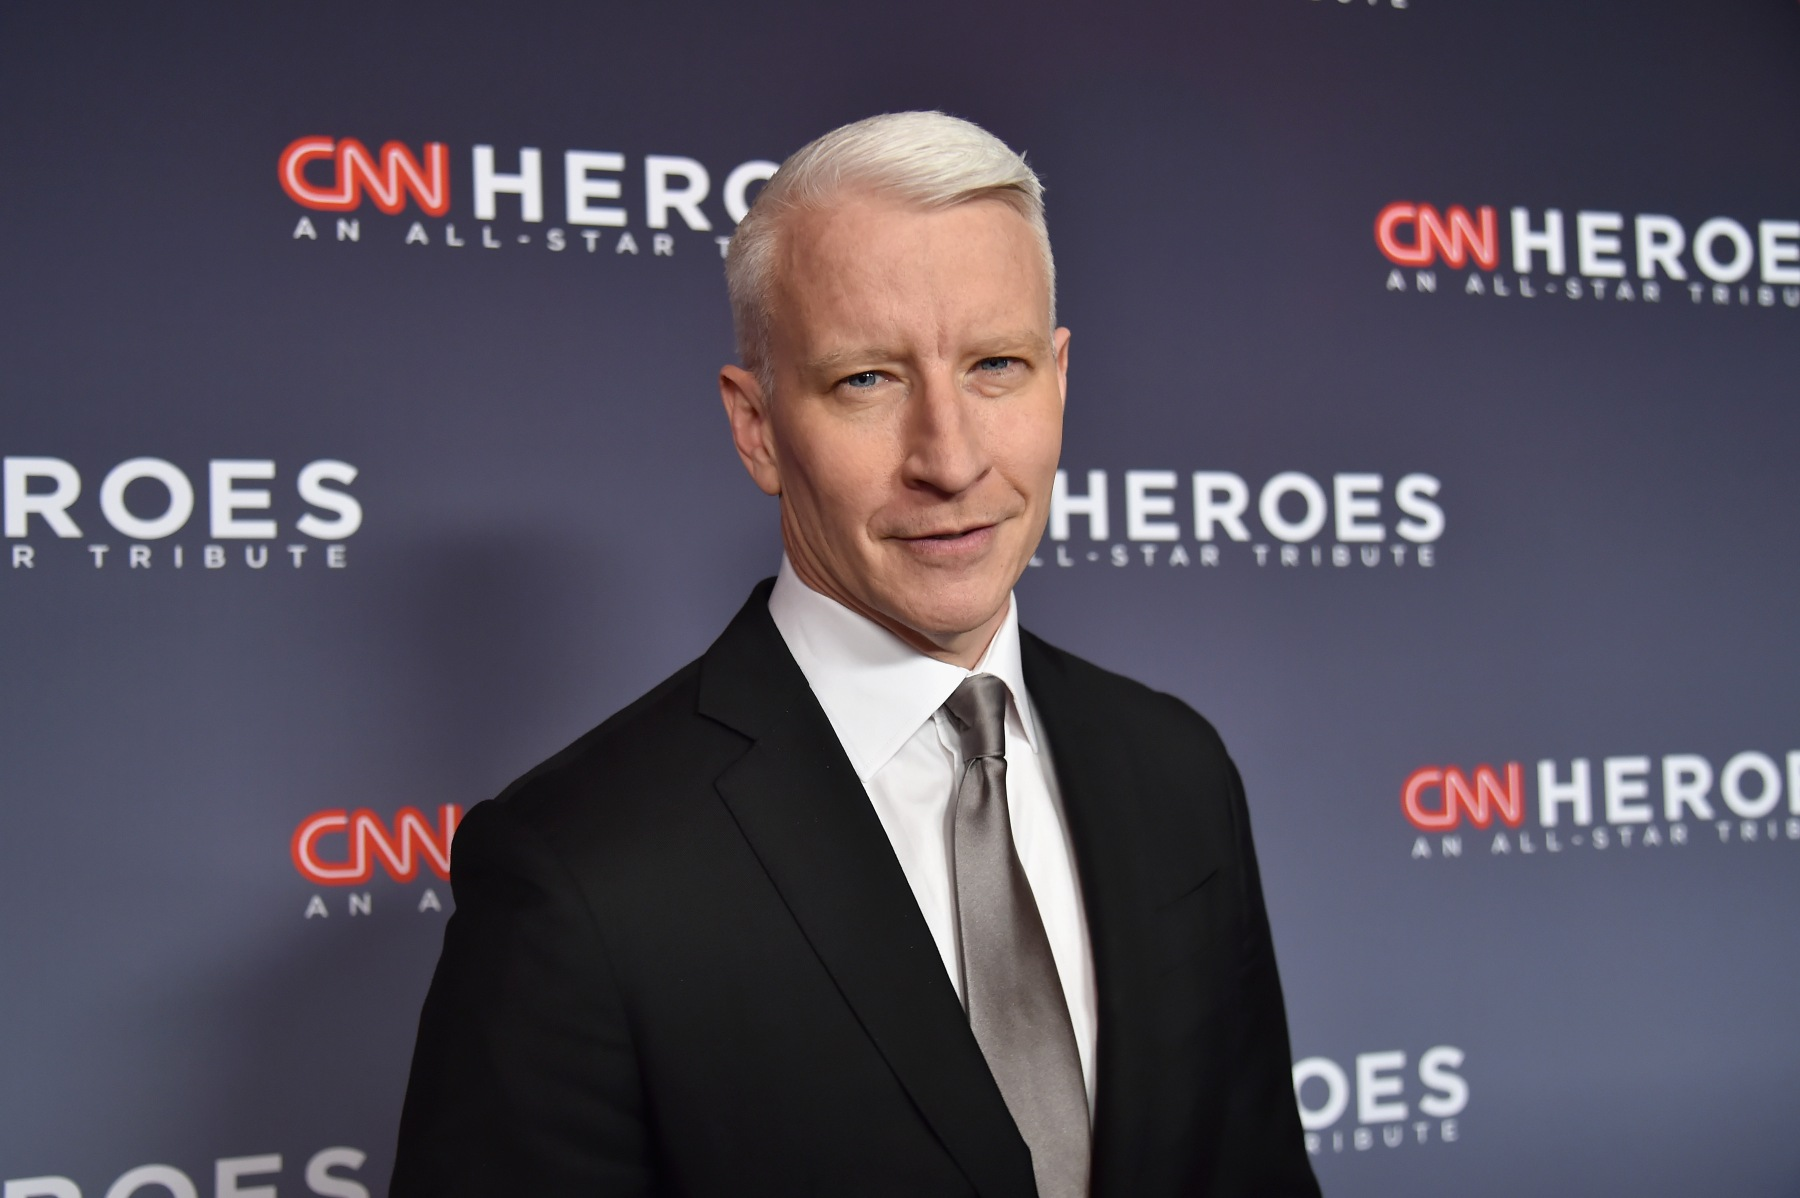 Anderson Cooper attends CNN Heroes 2017 at the American Museum of Natural History on December 17, 2017 in New York City. 27437_015  (Photo by Kevin Mazur/Getty Images for CNN)